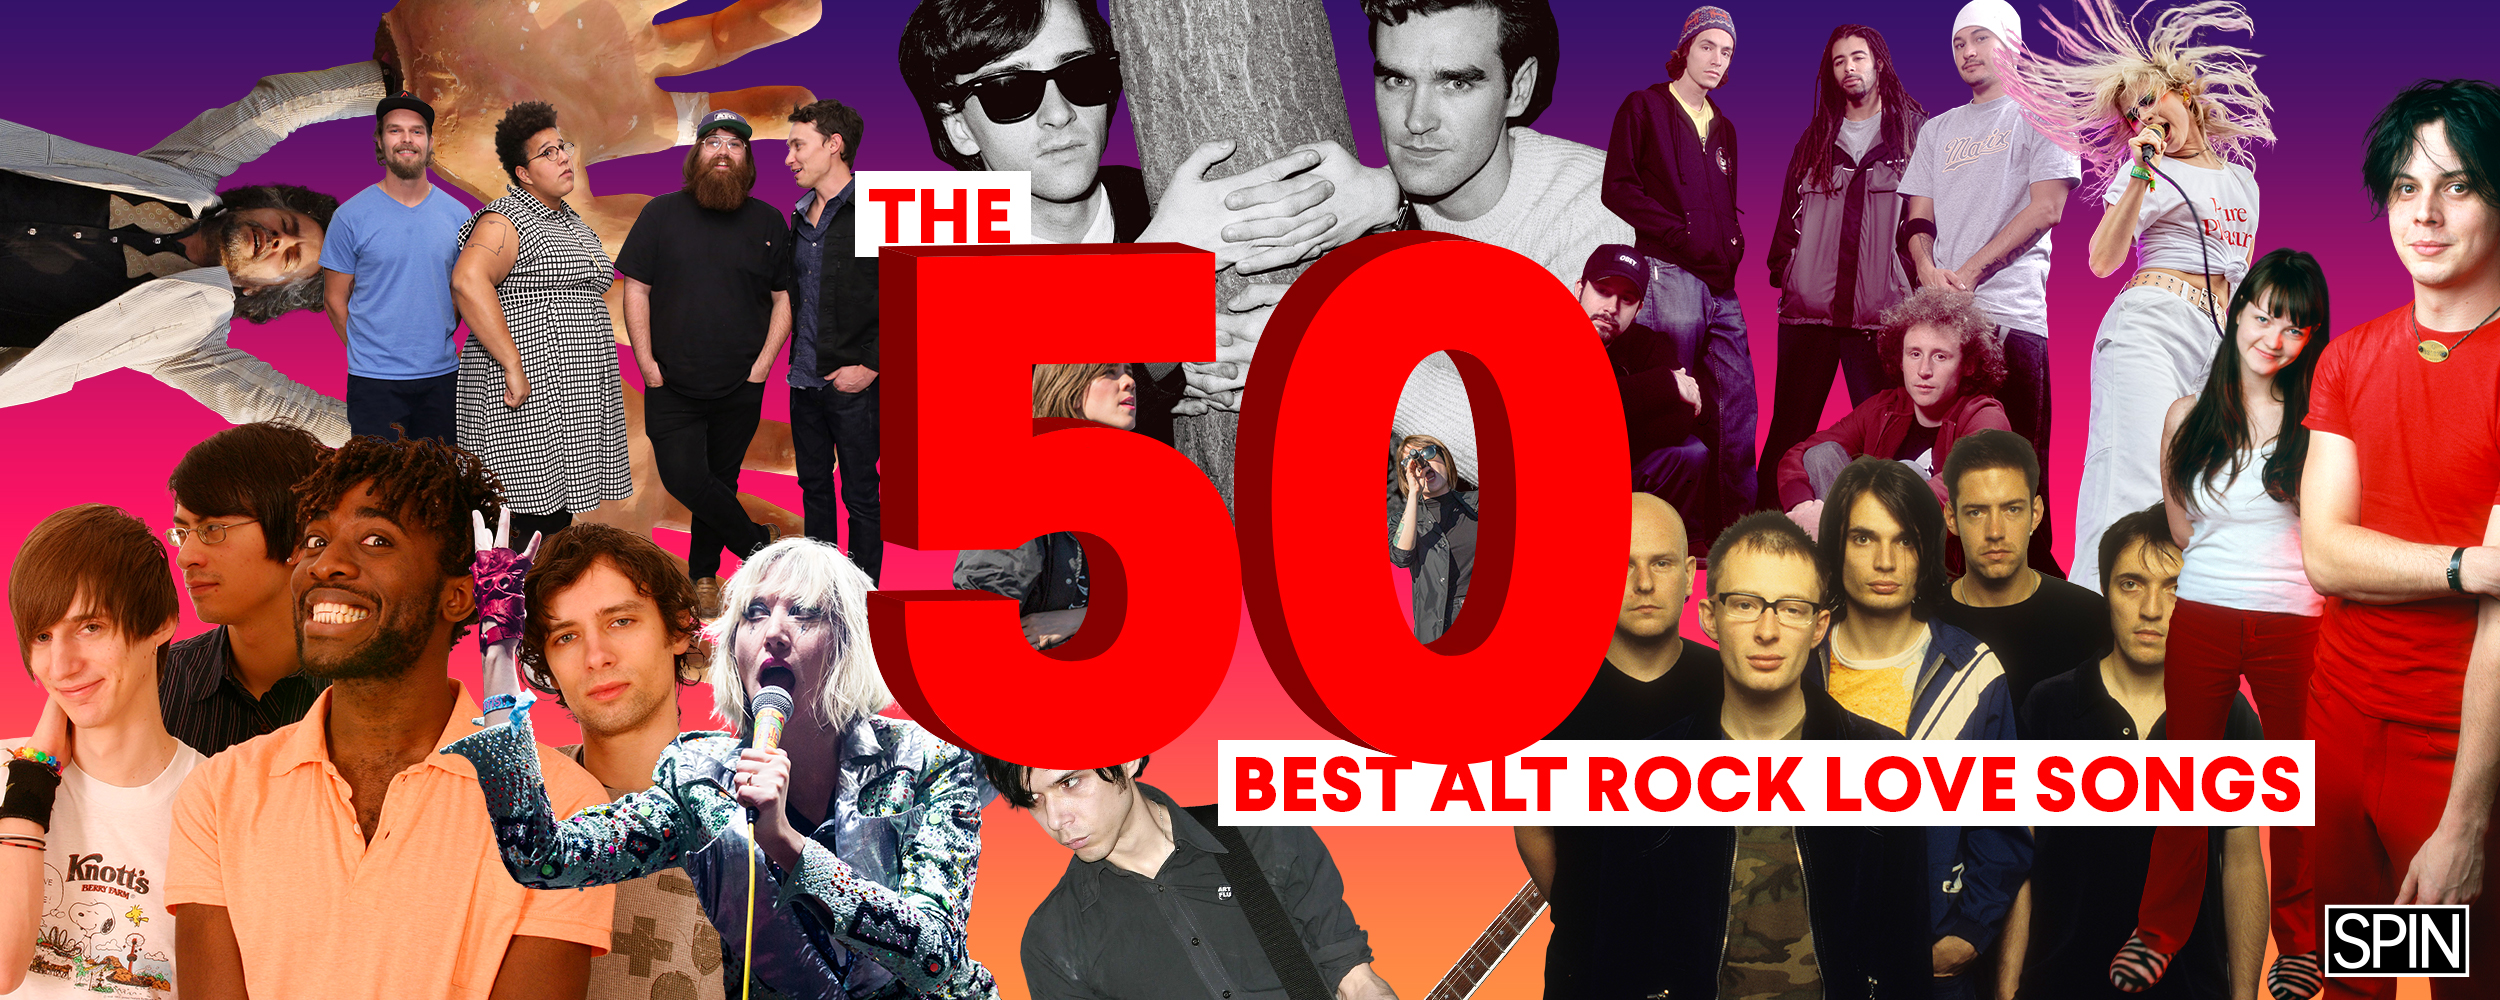 The 50 Best Alt-Rock Love Songs